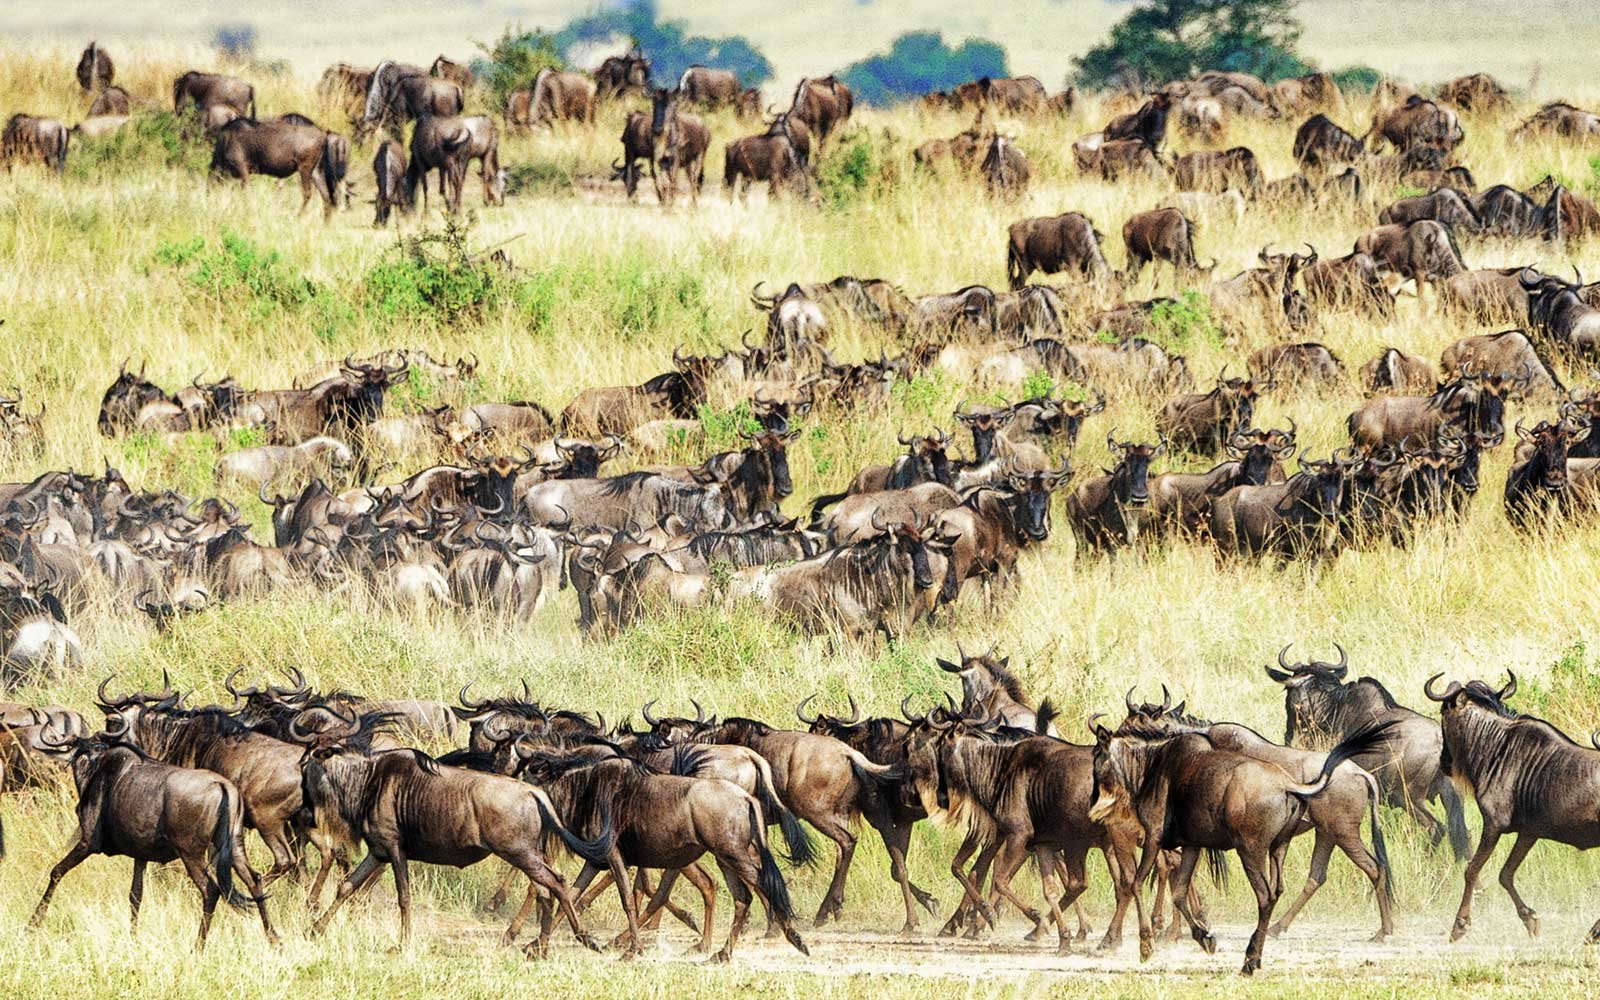 Wildebeest, Great Migration, Tanzania, Africa